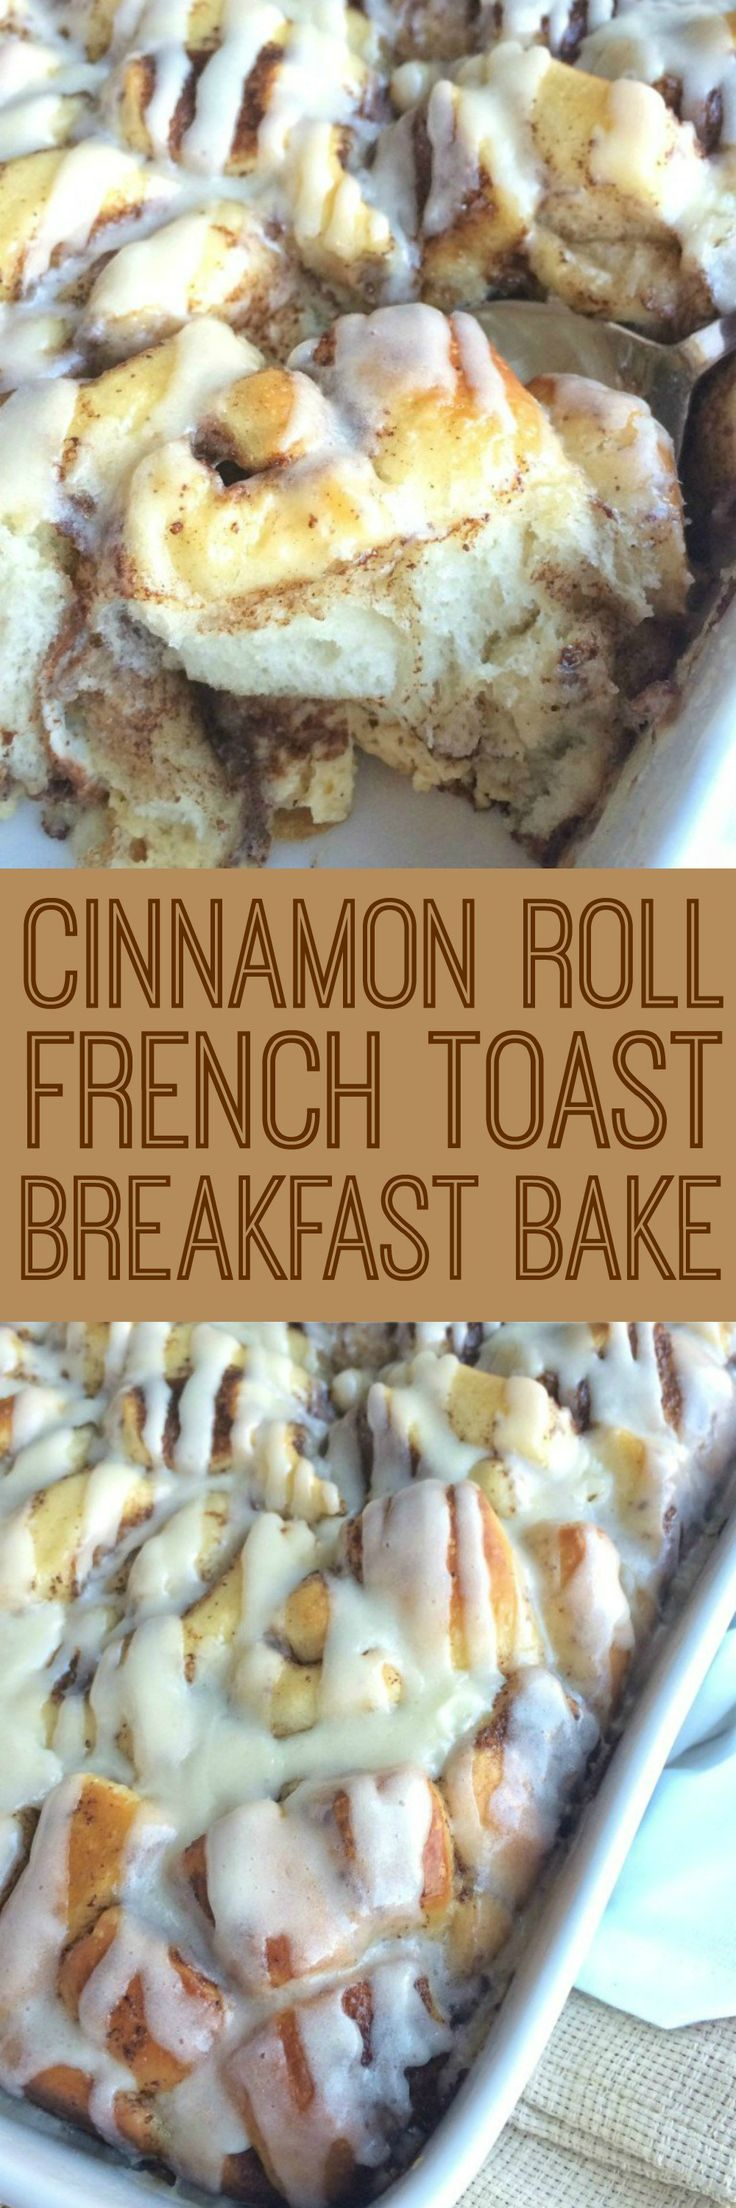 Easy, frozen cinnamon rolls soaked in a milk & egg mixture overnight. Bake it up in the morning and you have a delicious breakfast bake that everyone will love. This cinnamon roll french toast breakfast bake is perfect for a special occasion breakfast or for guests.